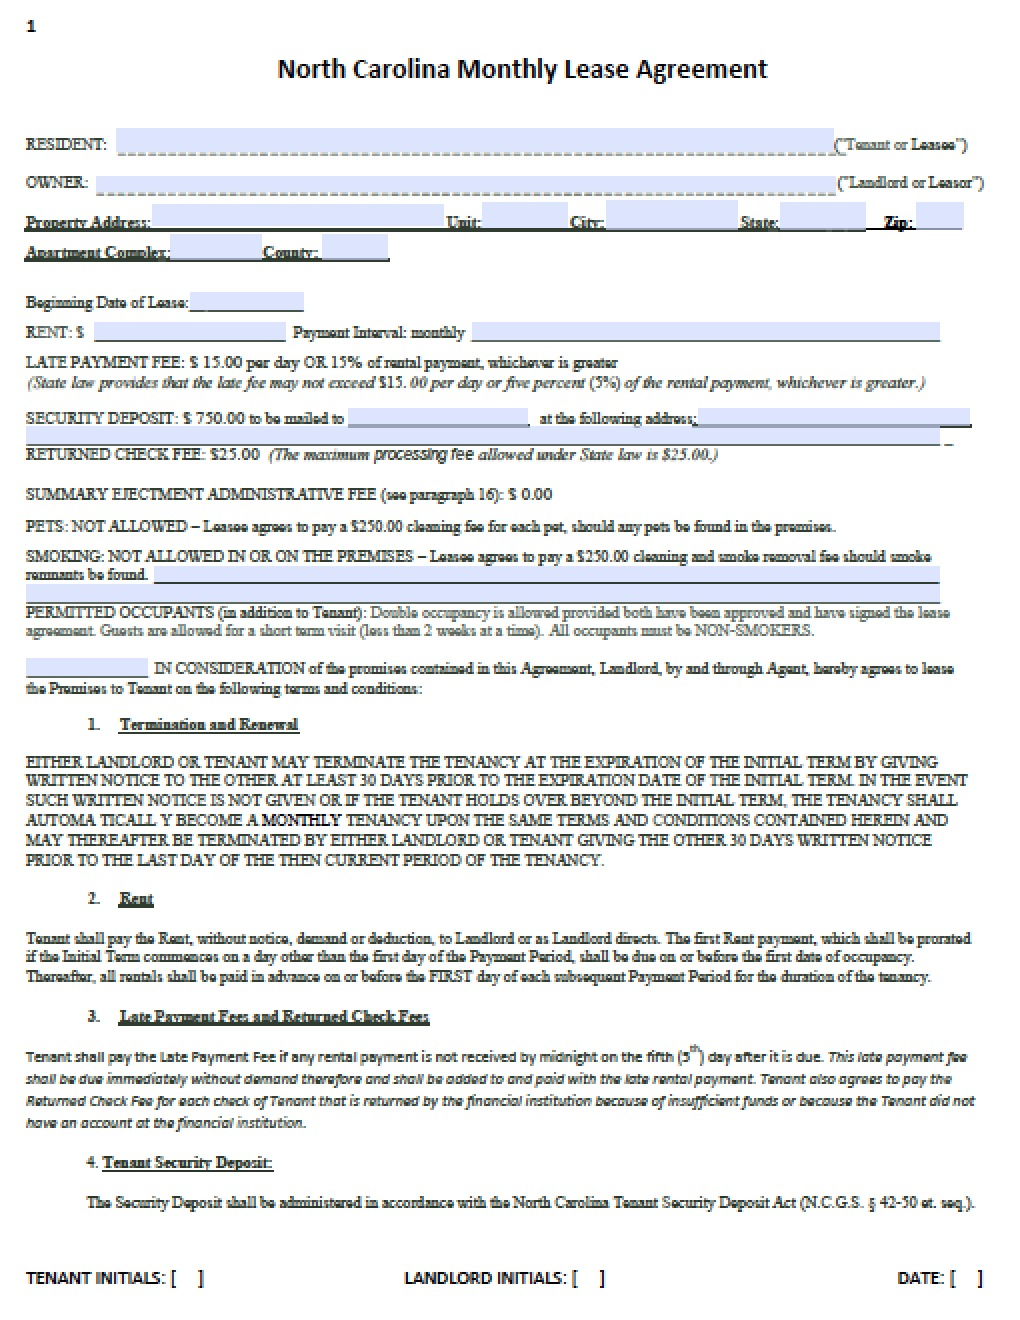 Free North Carolina Month To Month Lease Agreement Template